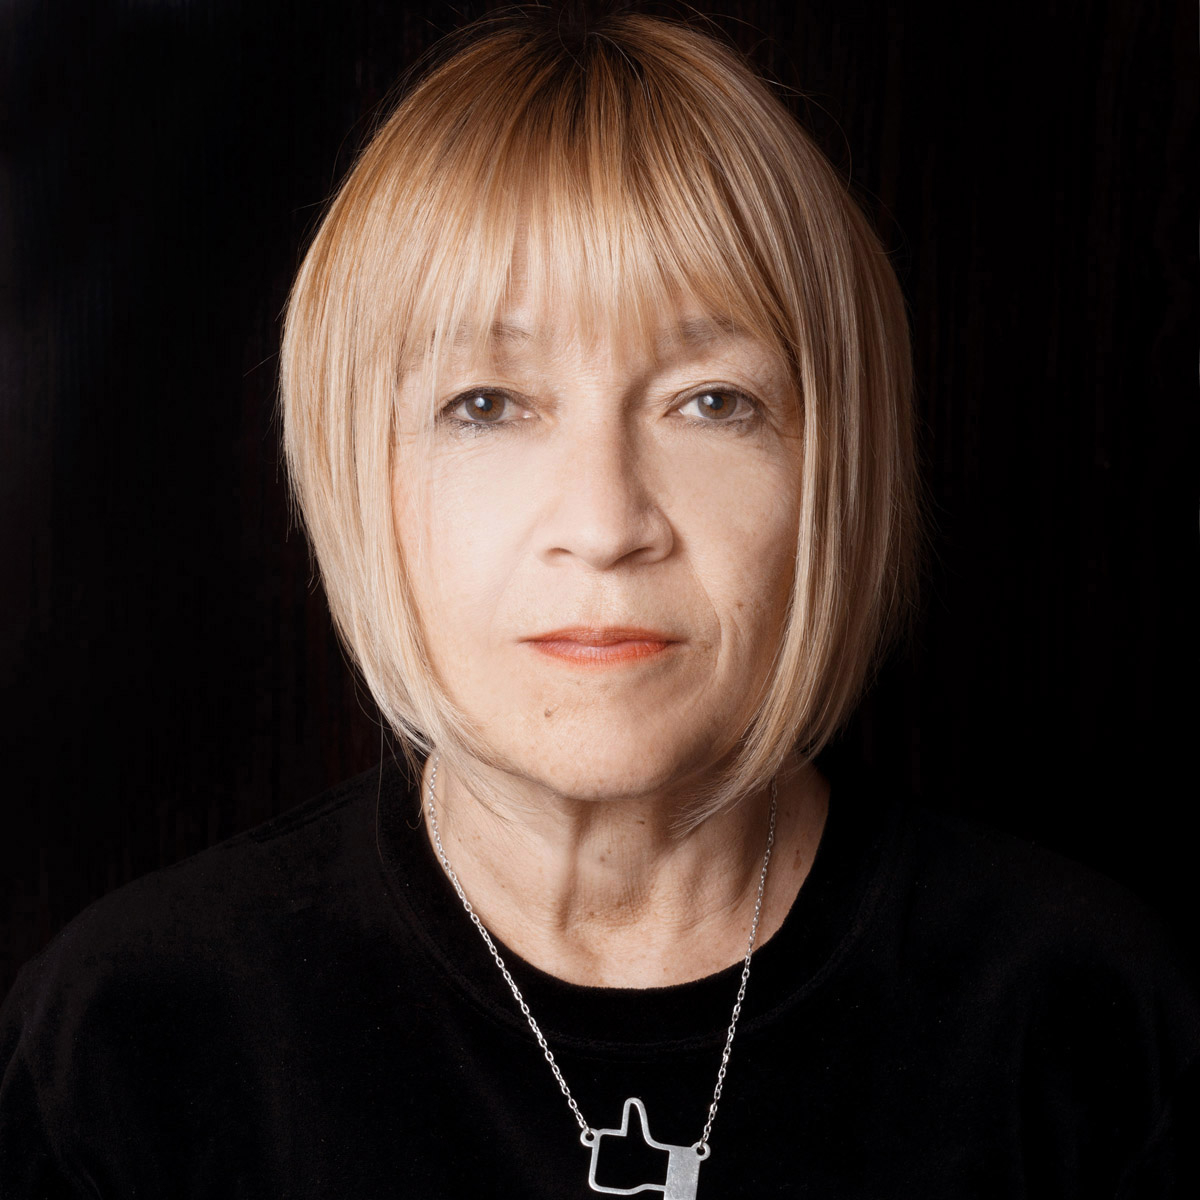 I don't think in terms of getting older, I think in terms of getting better and better - Cindy Gallop, founder of Make Love Not Porn, the world's first social sex sharing platform designed to normalize the way we view, practice, and talk about sex